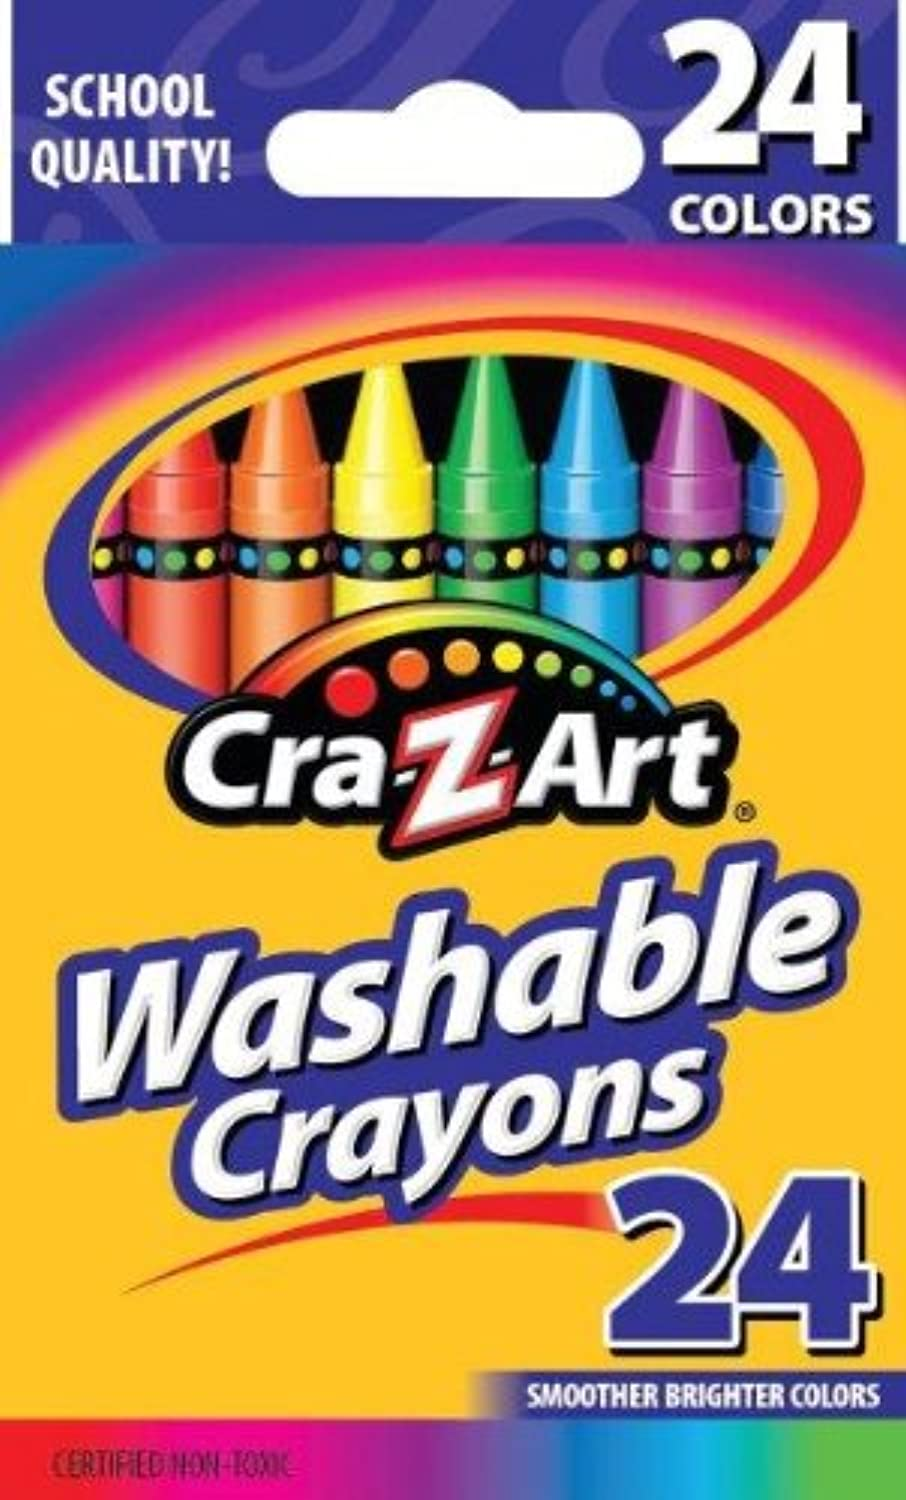 Cra-Z-Art Washable Crayons, 24 Count (10222) by Cra-Z-Art